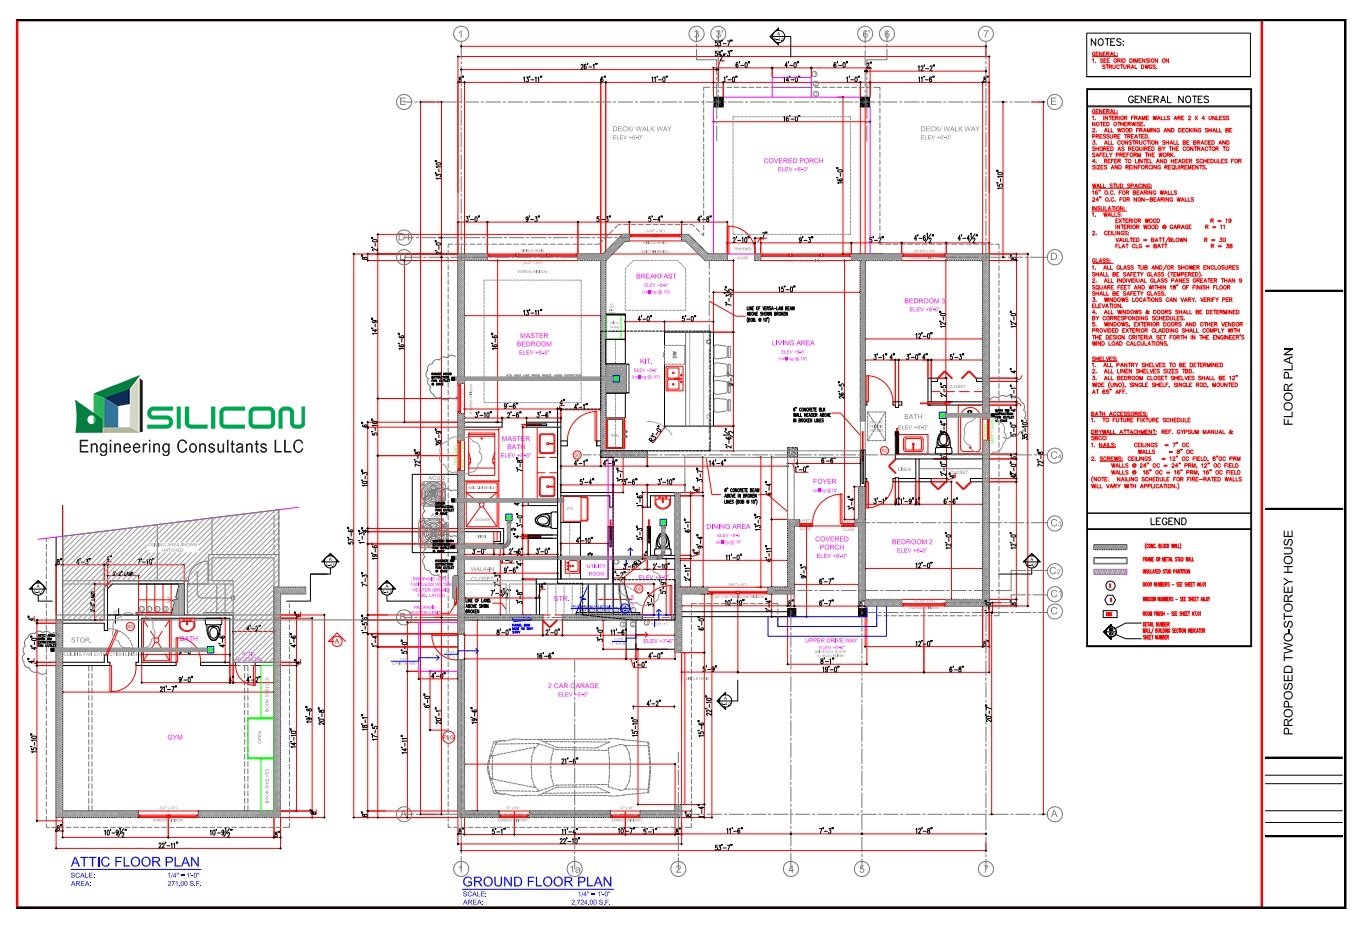 1366x926 Architectural Construction Drawing Services Usa Silicon